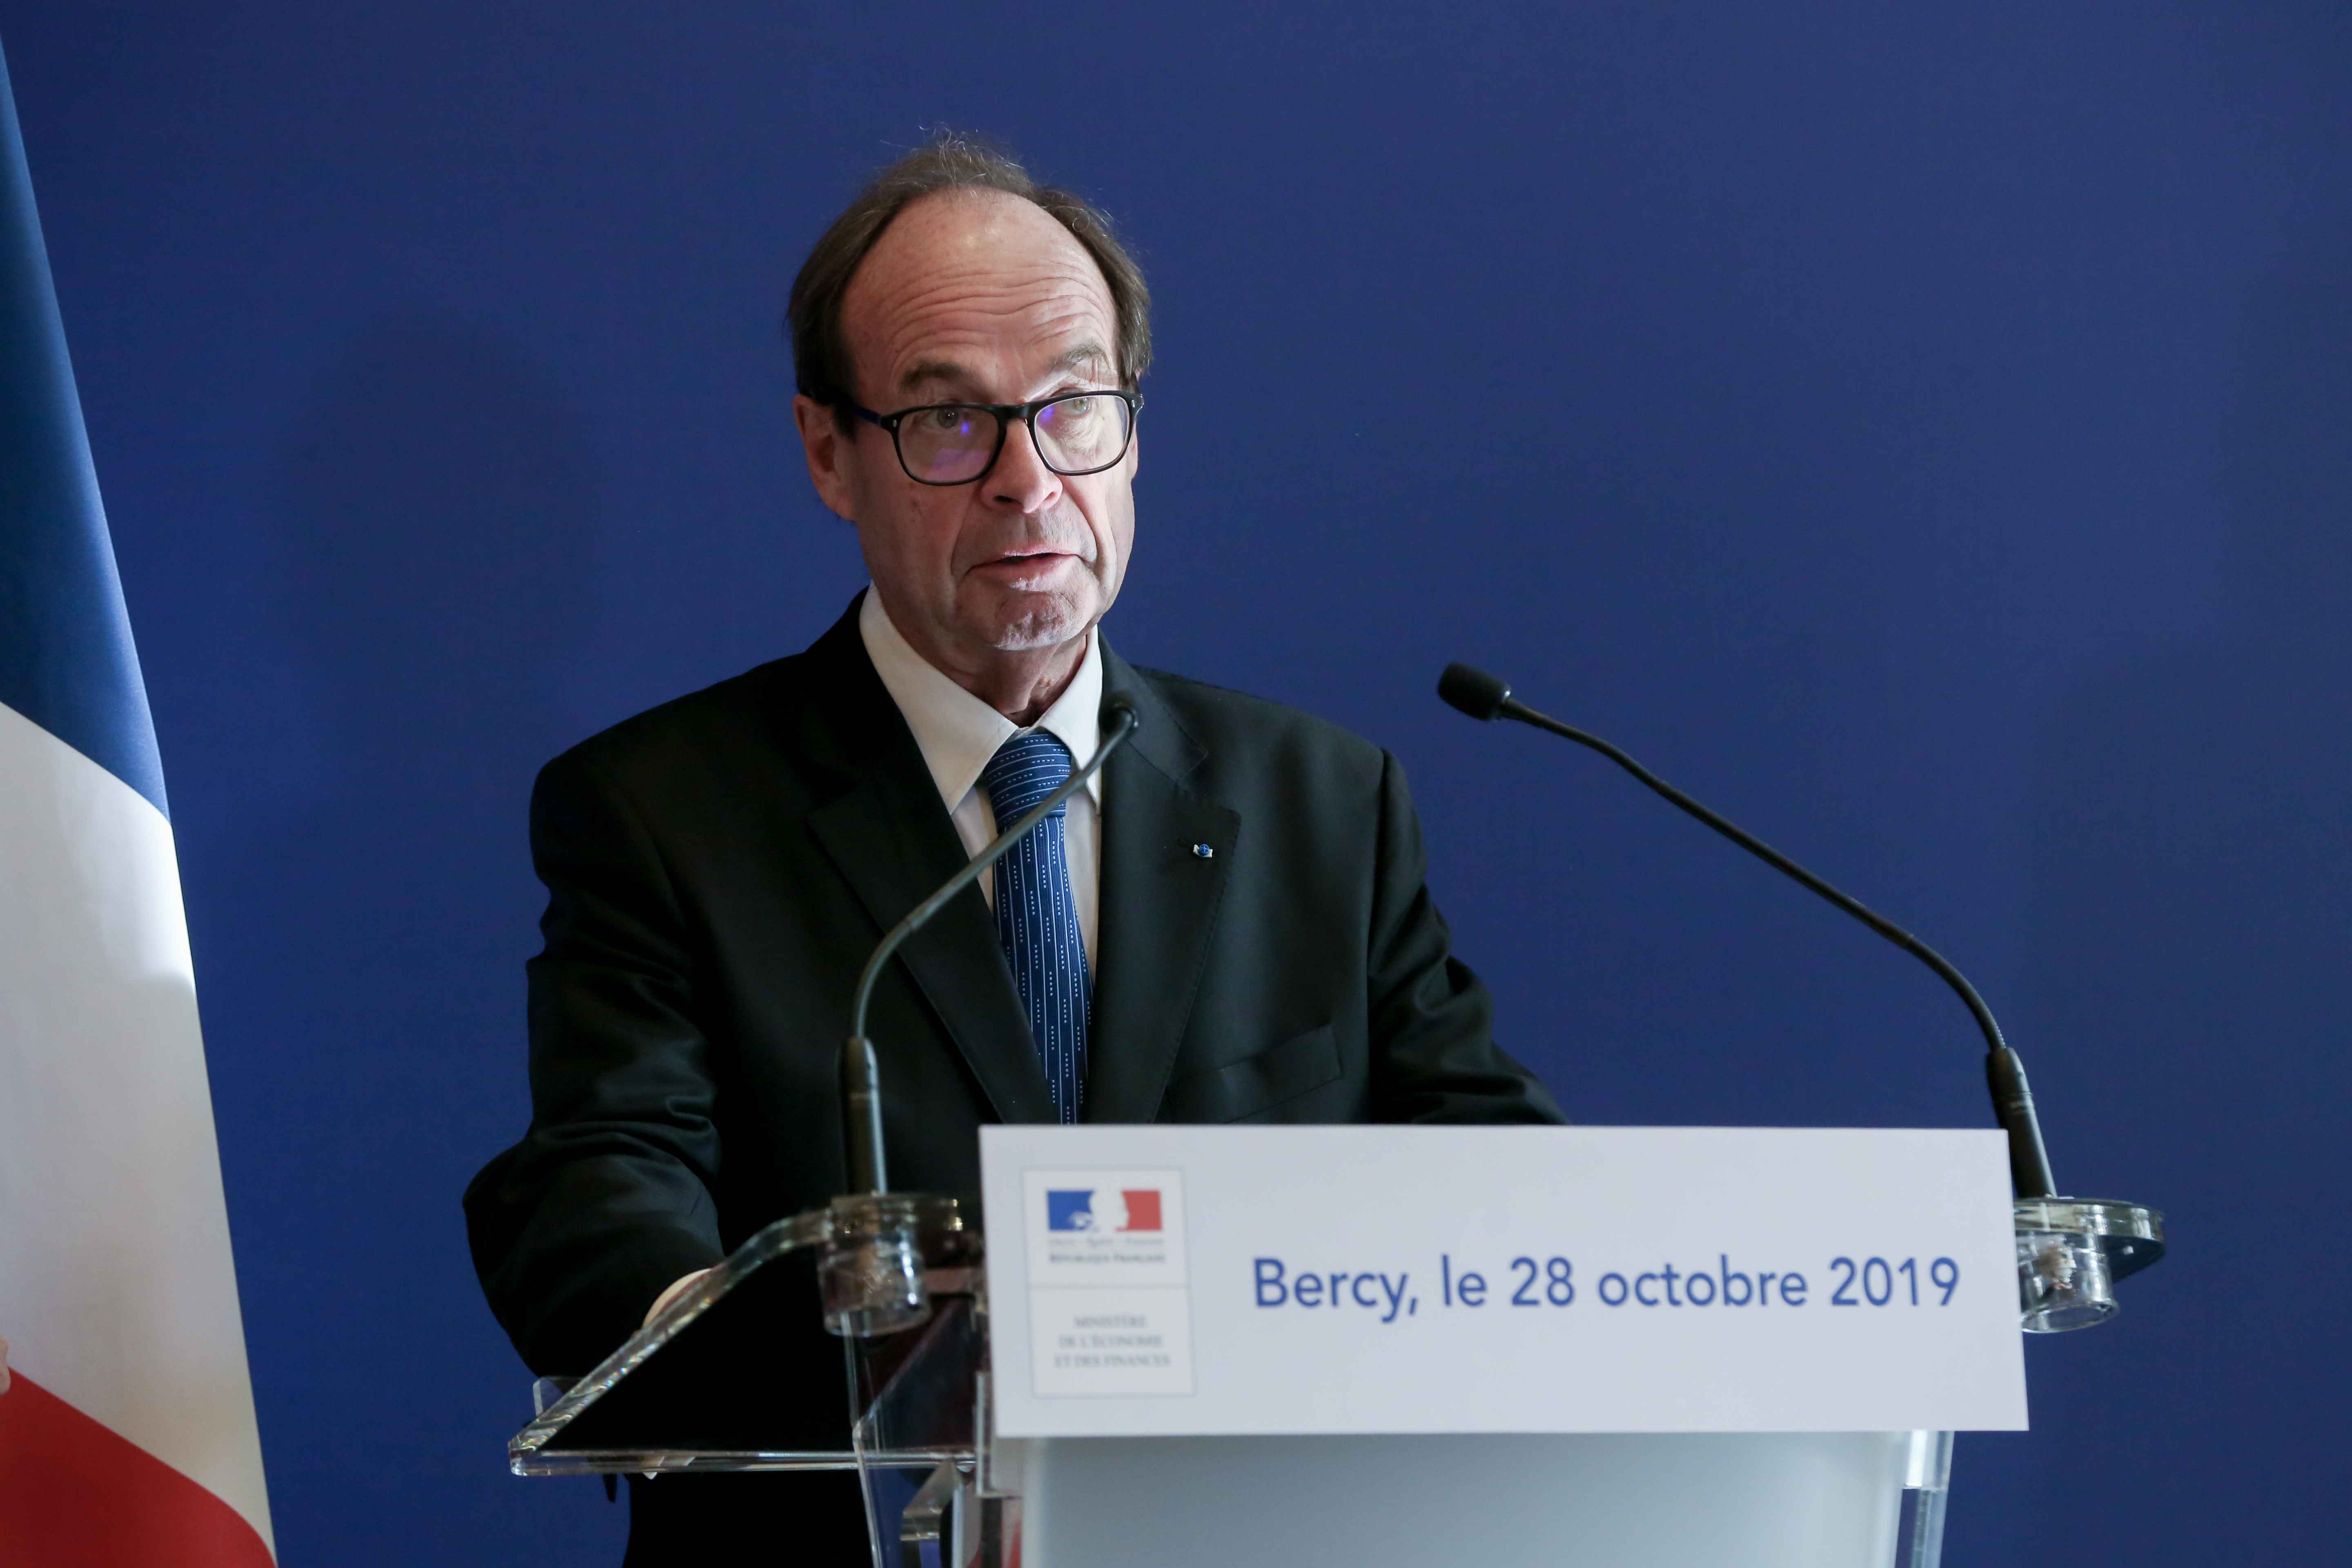 Report head Jean-Martin Folz give a press conference to present his report concerning the construction of the EPR at the Flamanville nuclear plant, at the ministry of Economy, in Paris, on OctAND ober 28, 2019.